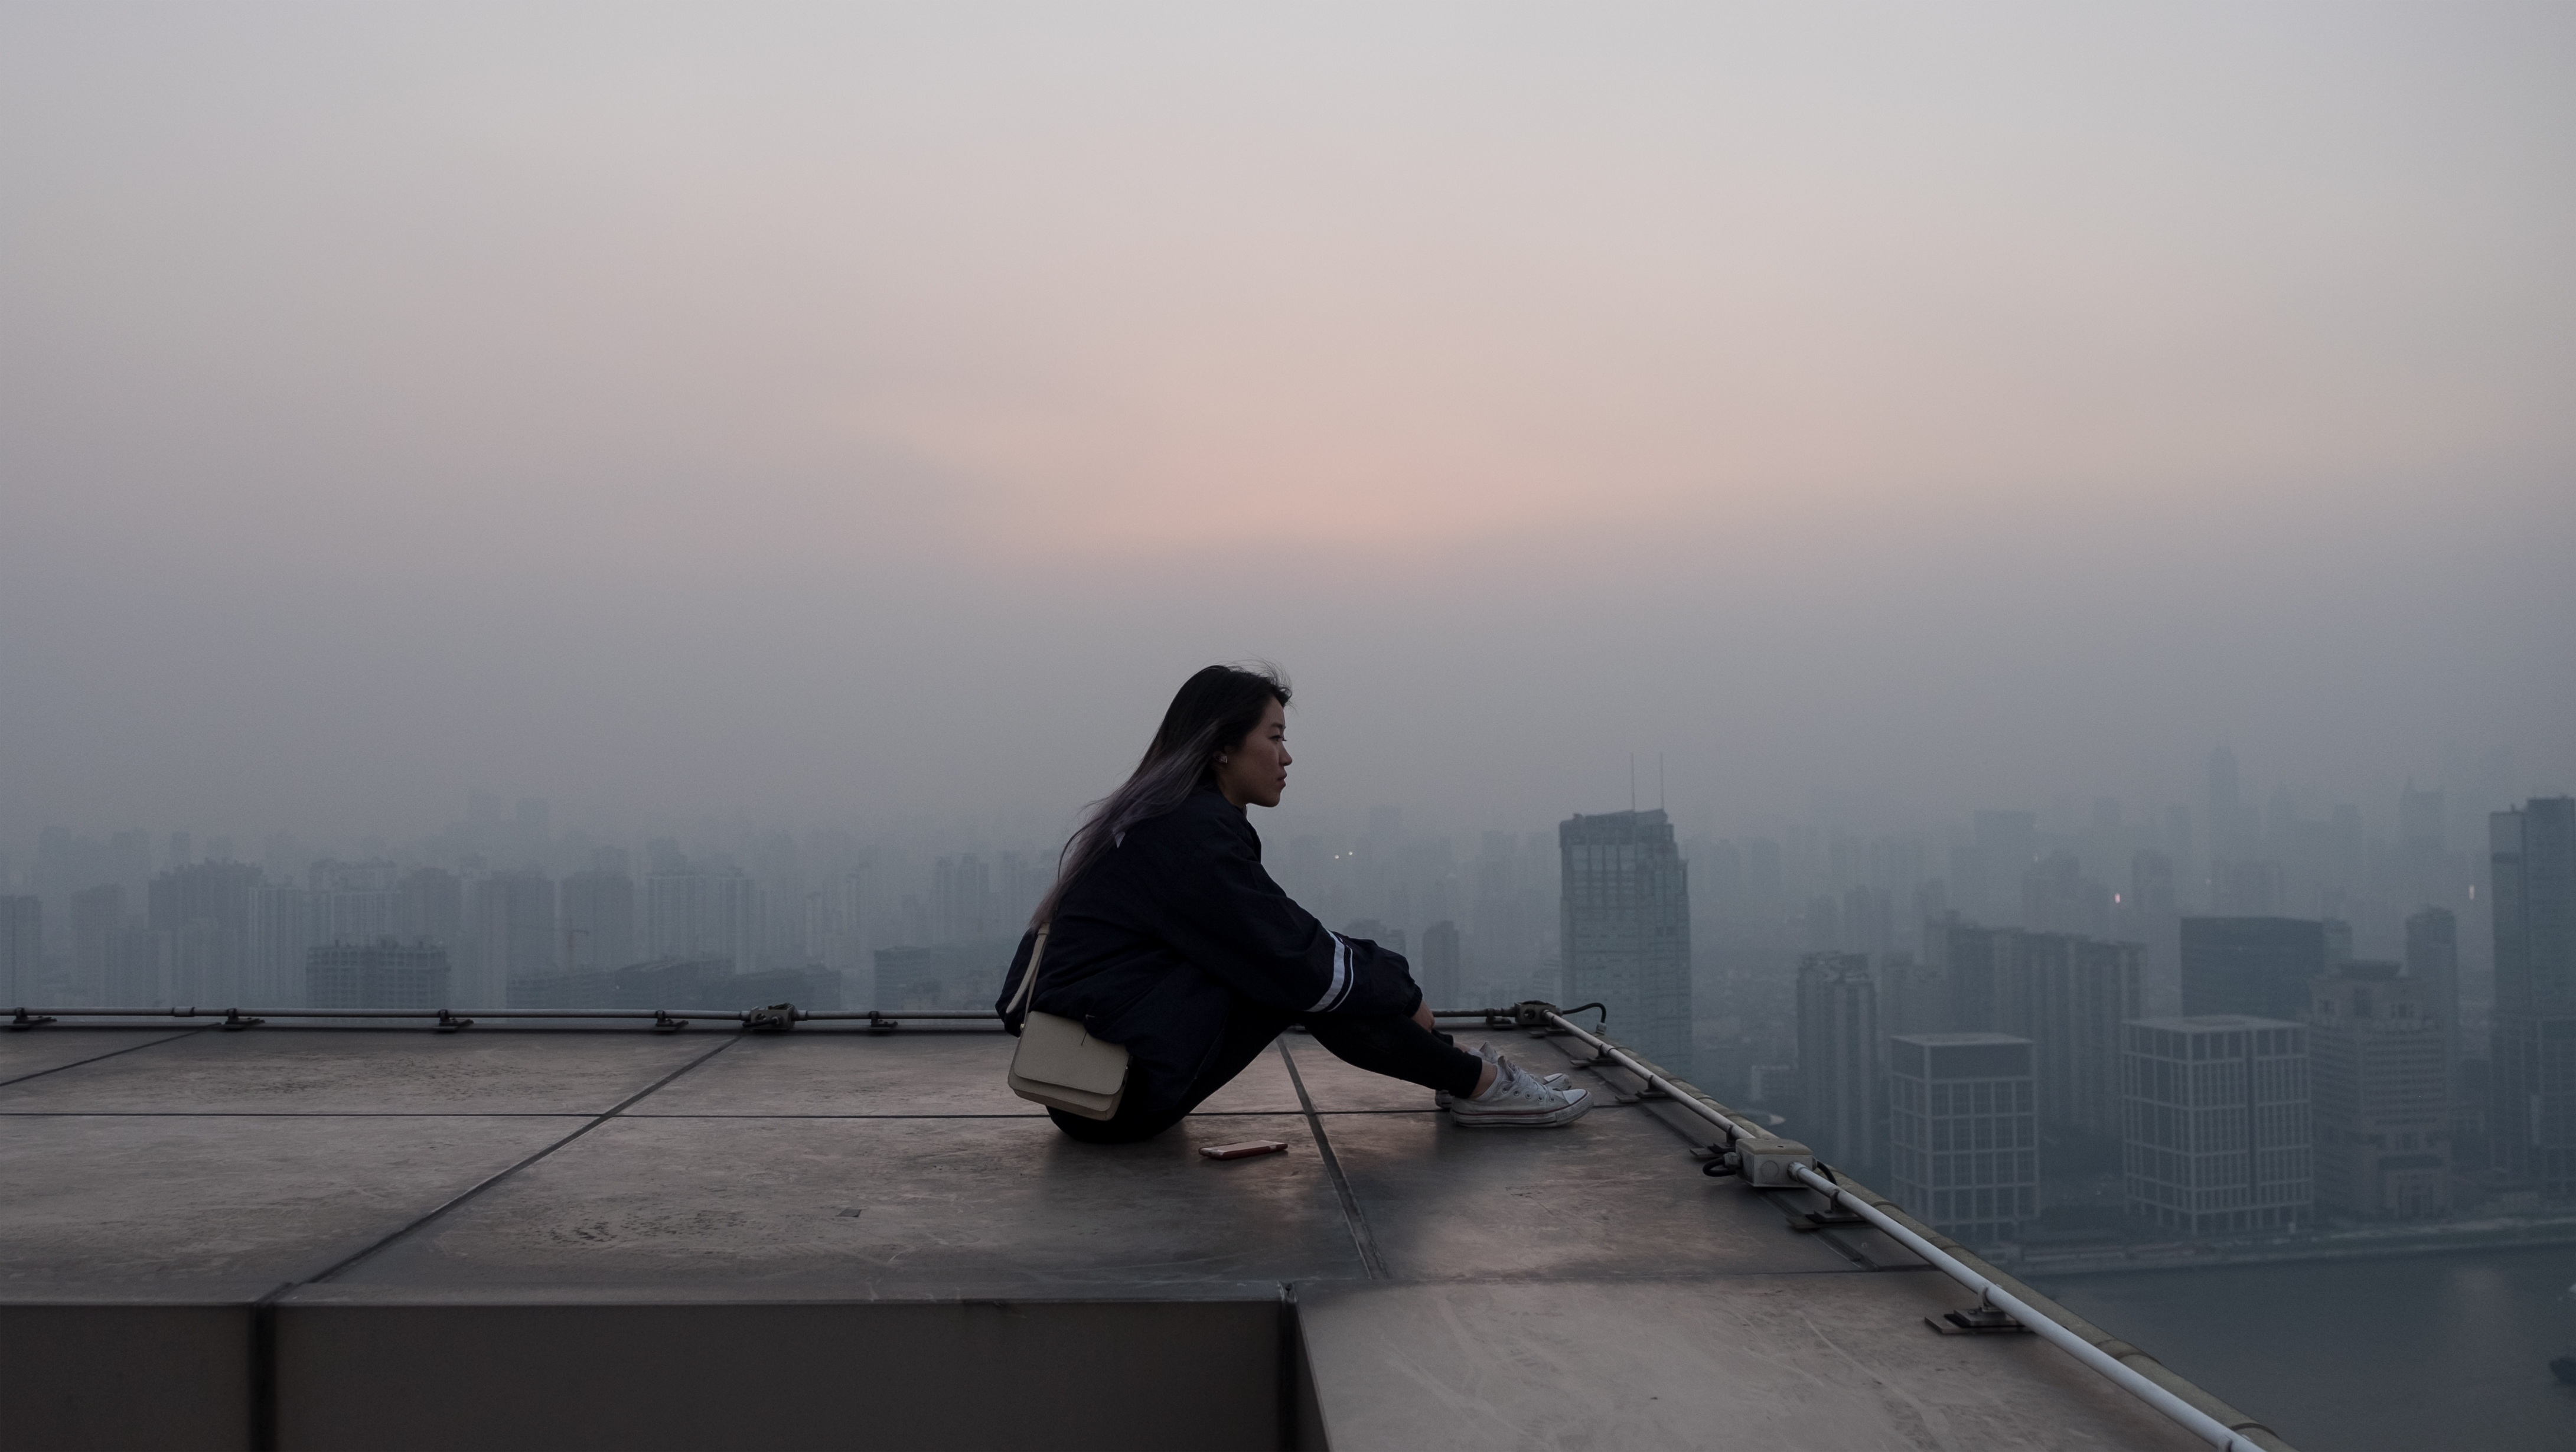 person sitting on rooftop with skyline in view.jpg